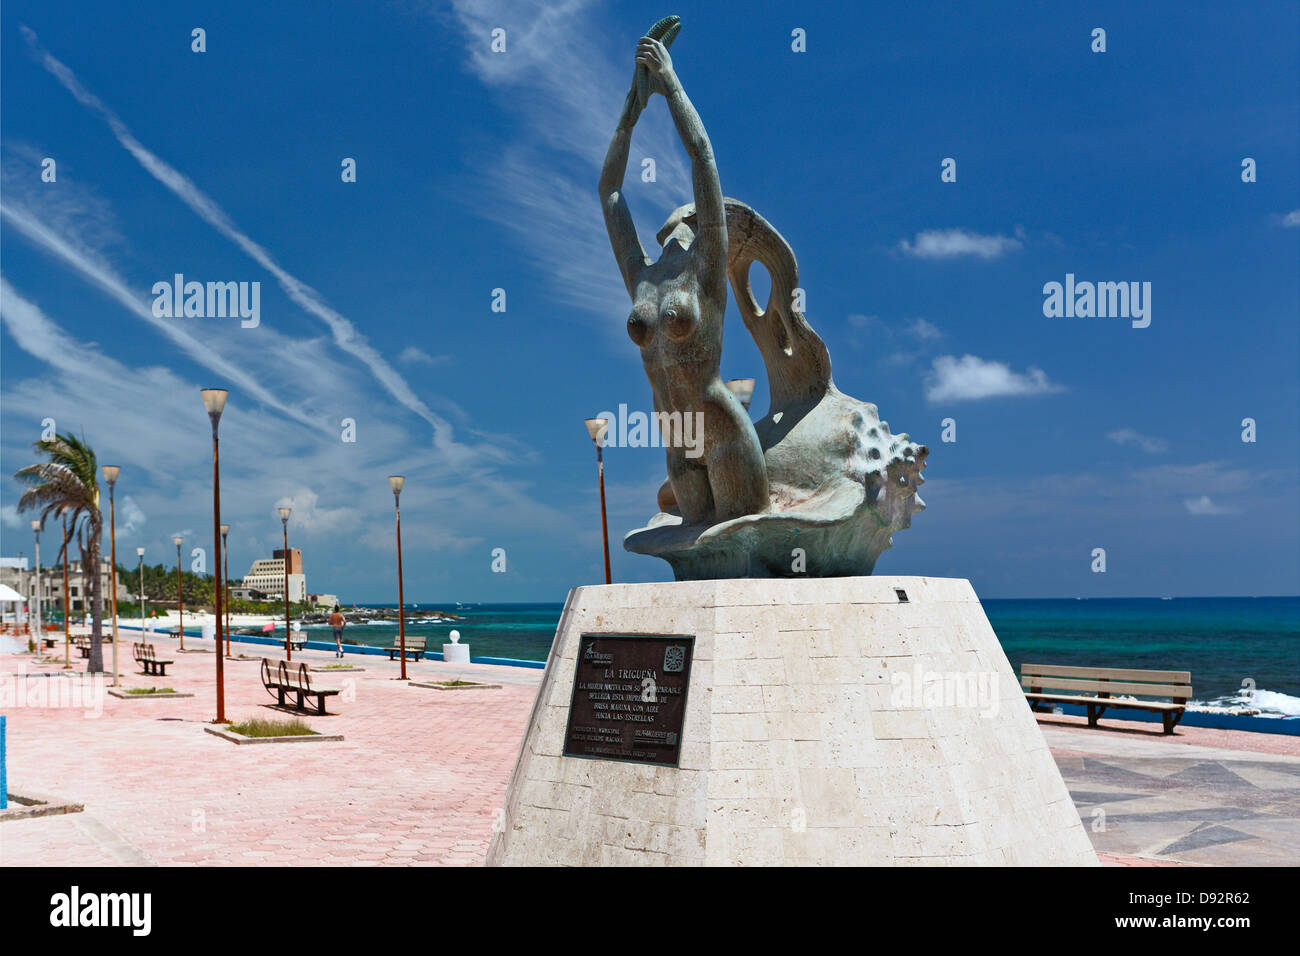 La Triguana (The Brunette) Statue, Isal Mujeres, Quintana Roo, Mexico - Stock Image